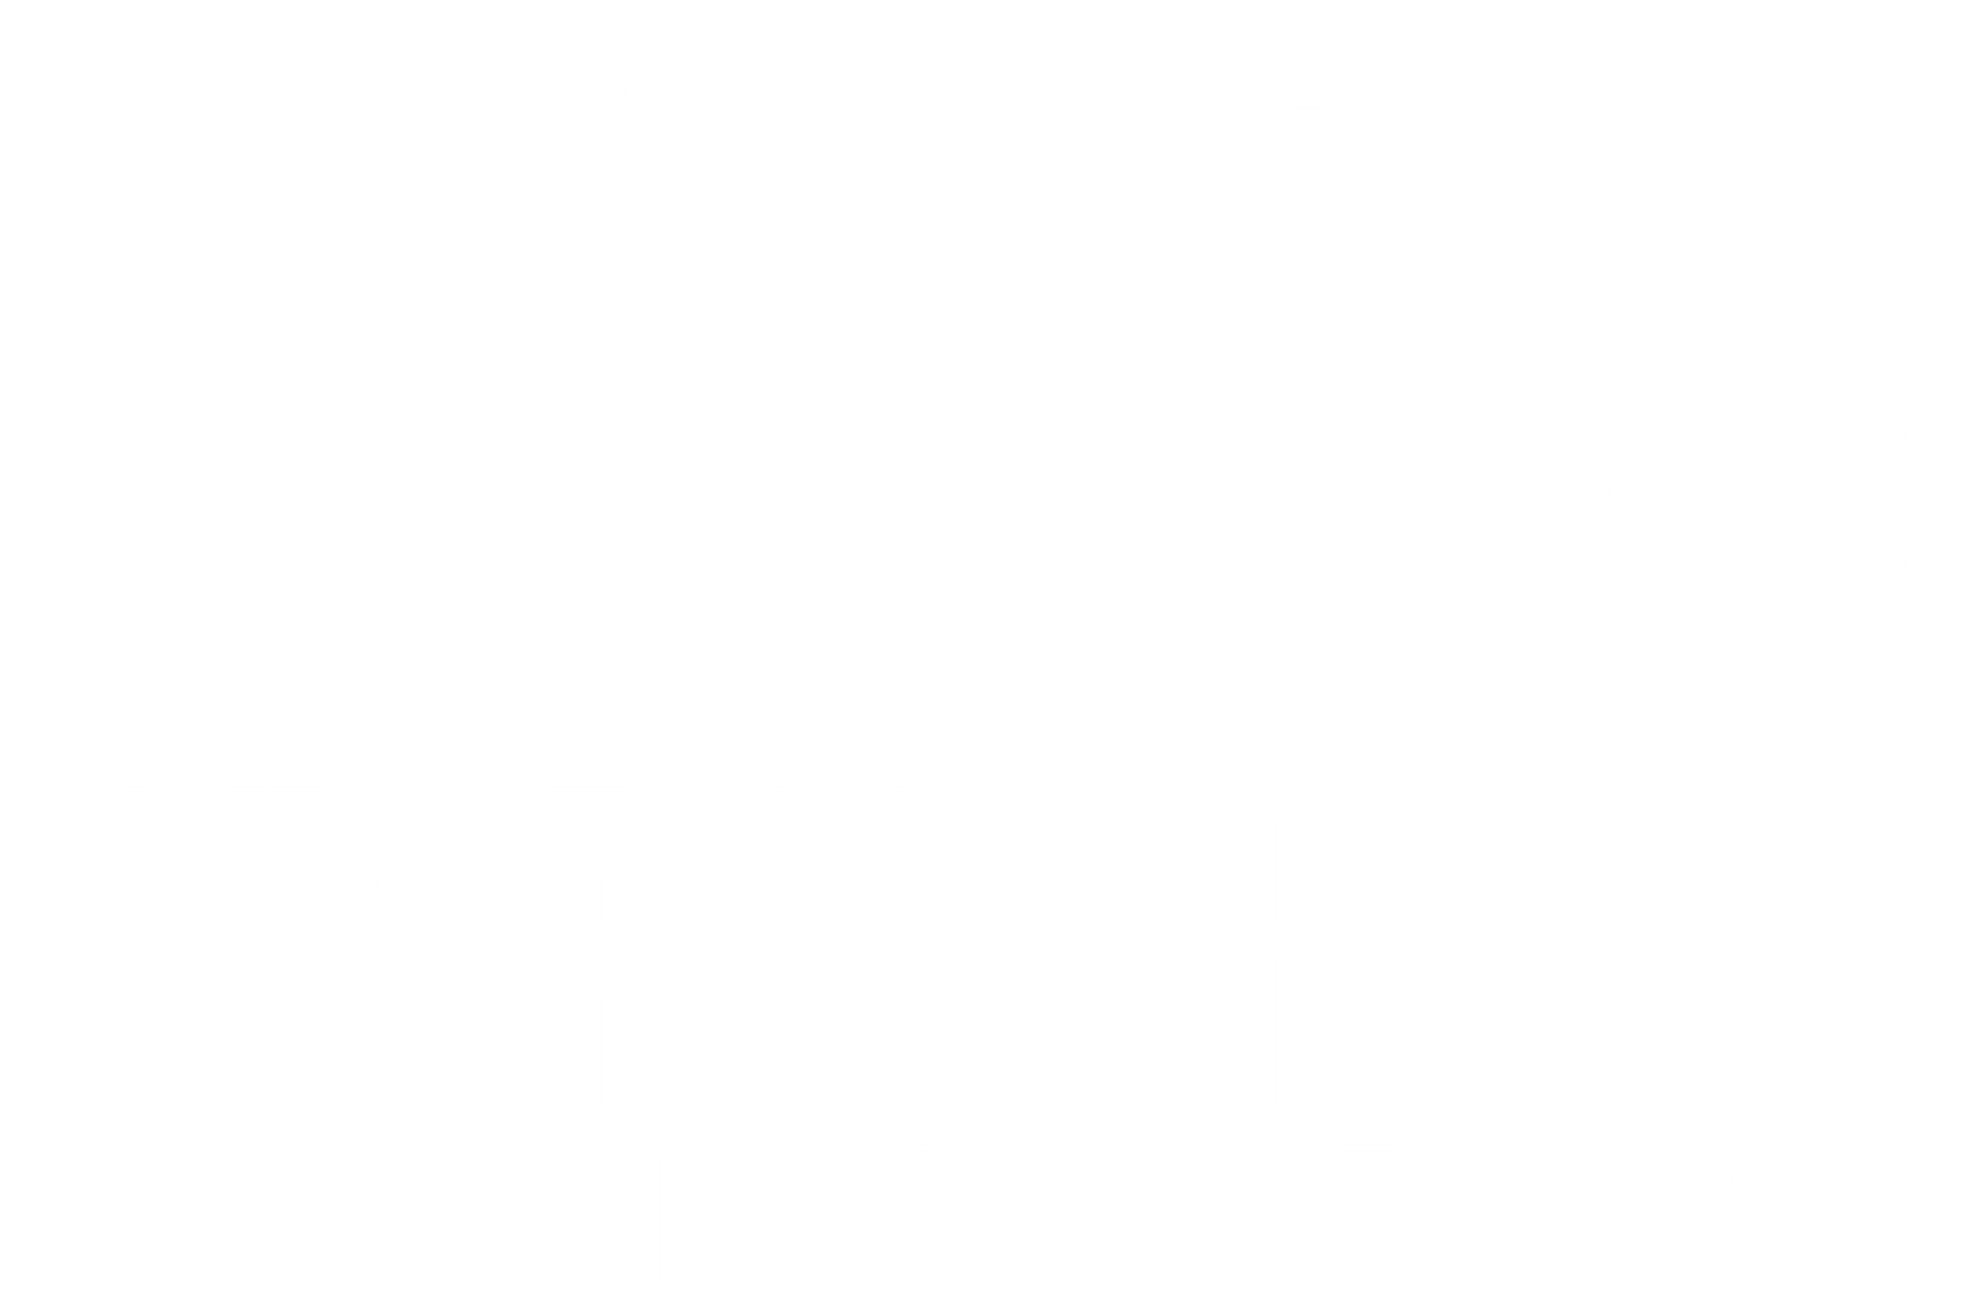 The Hunted Crows